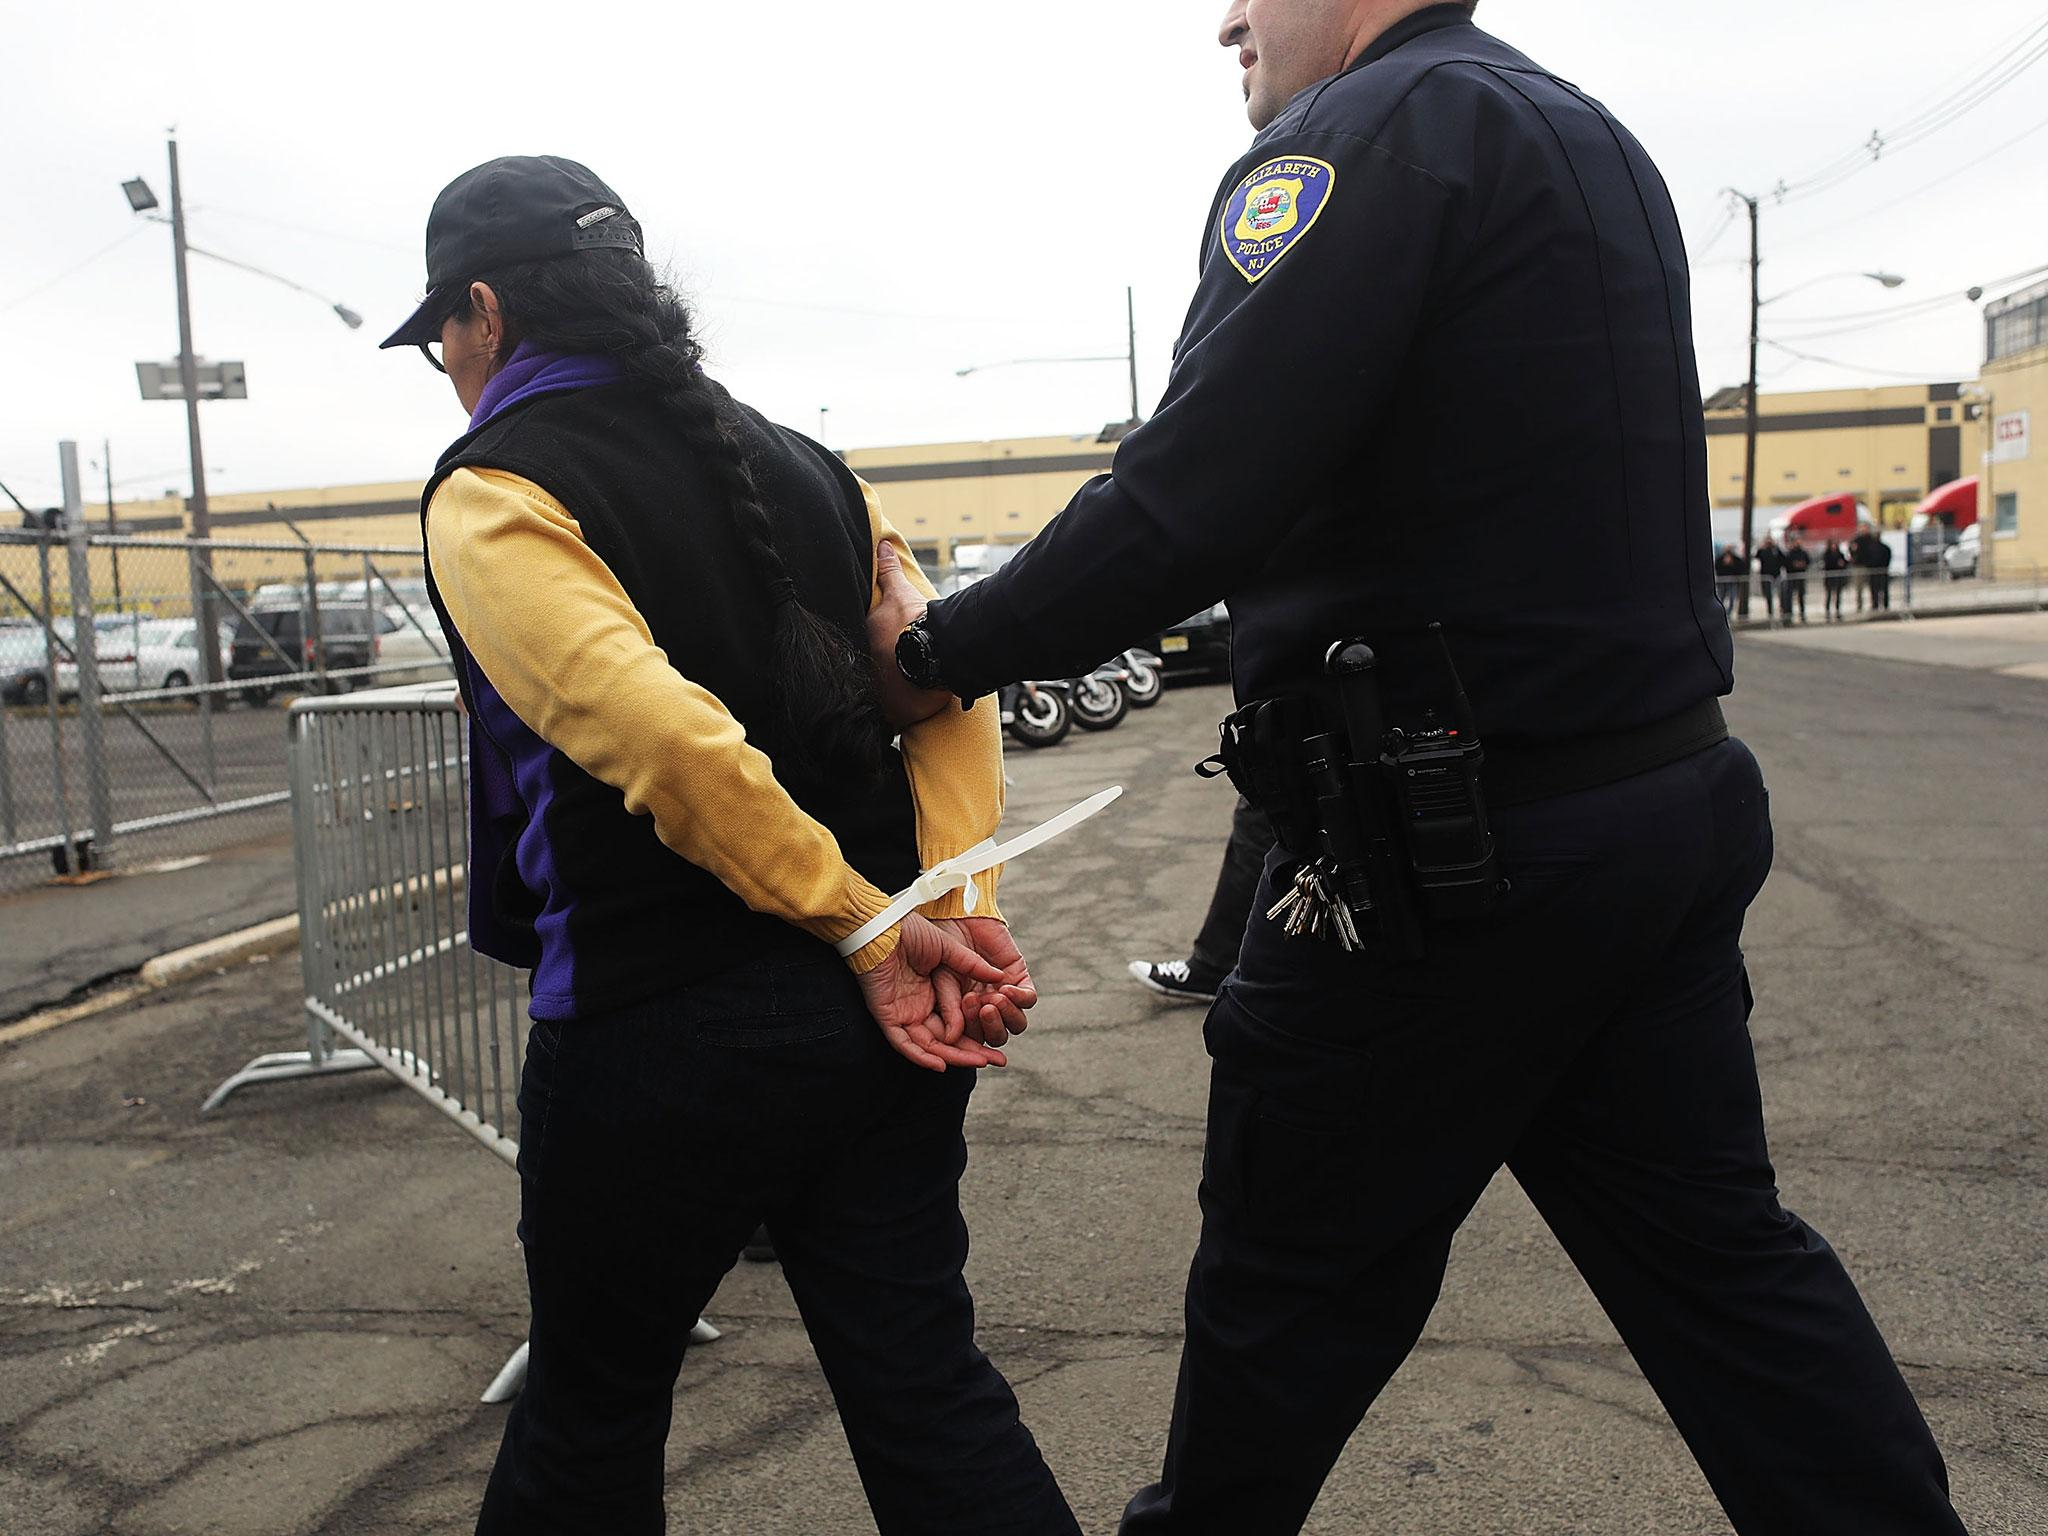 Us Crime Rates Have Decreased In Areas Of High Immigration, Says Study